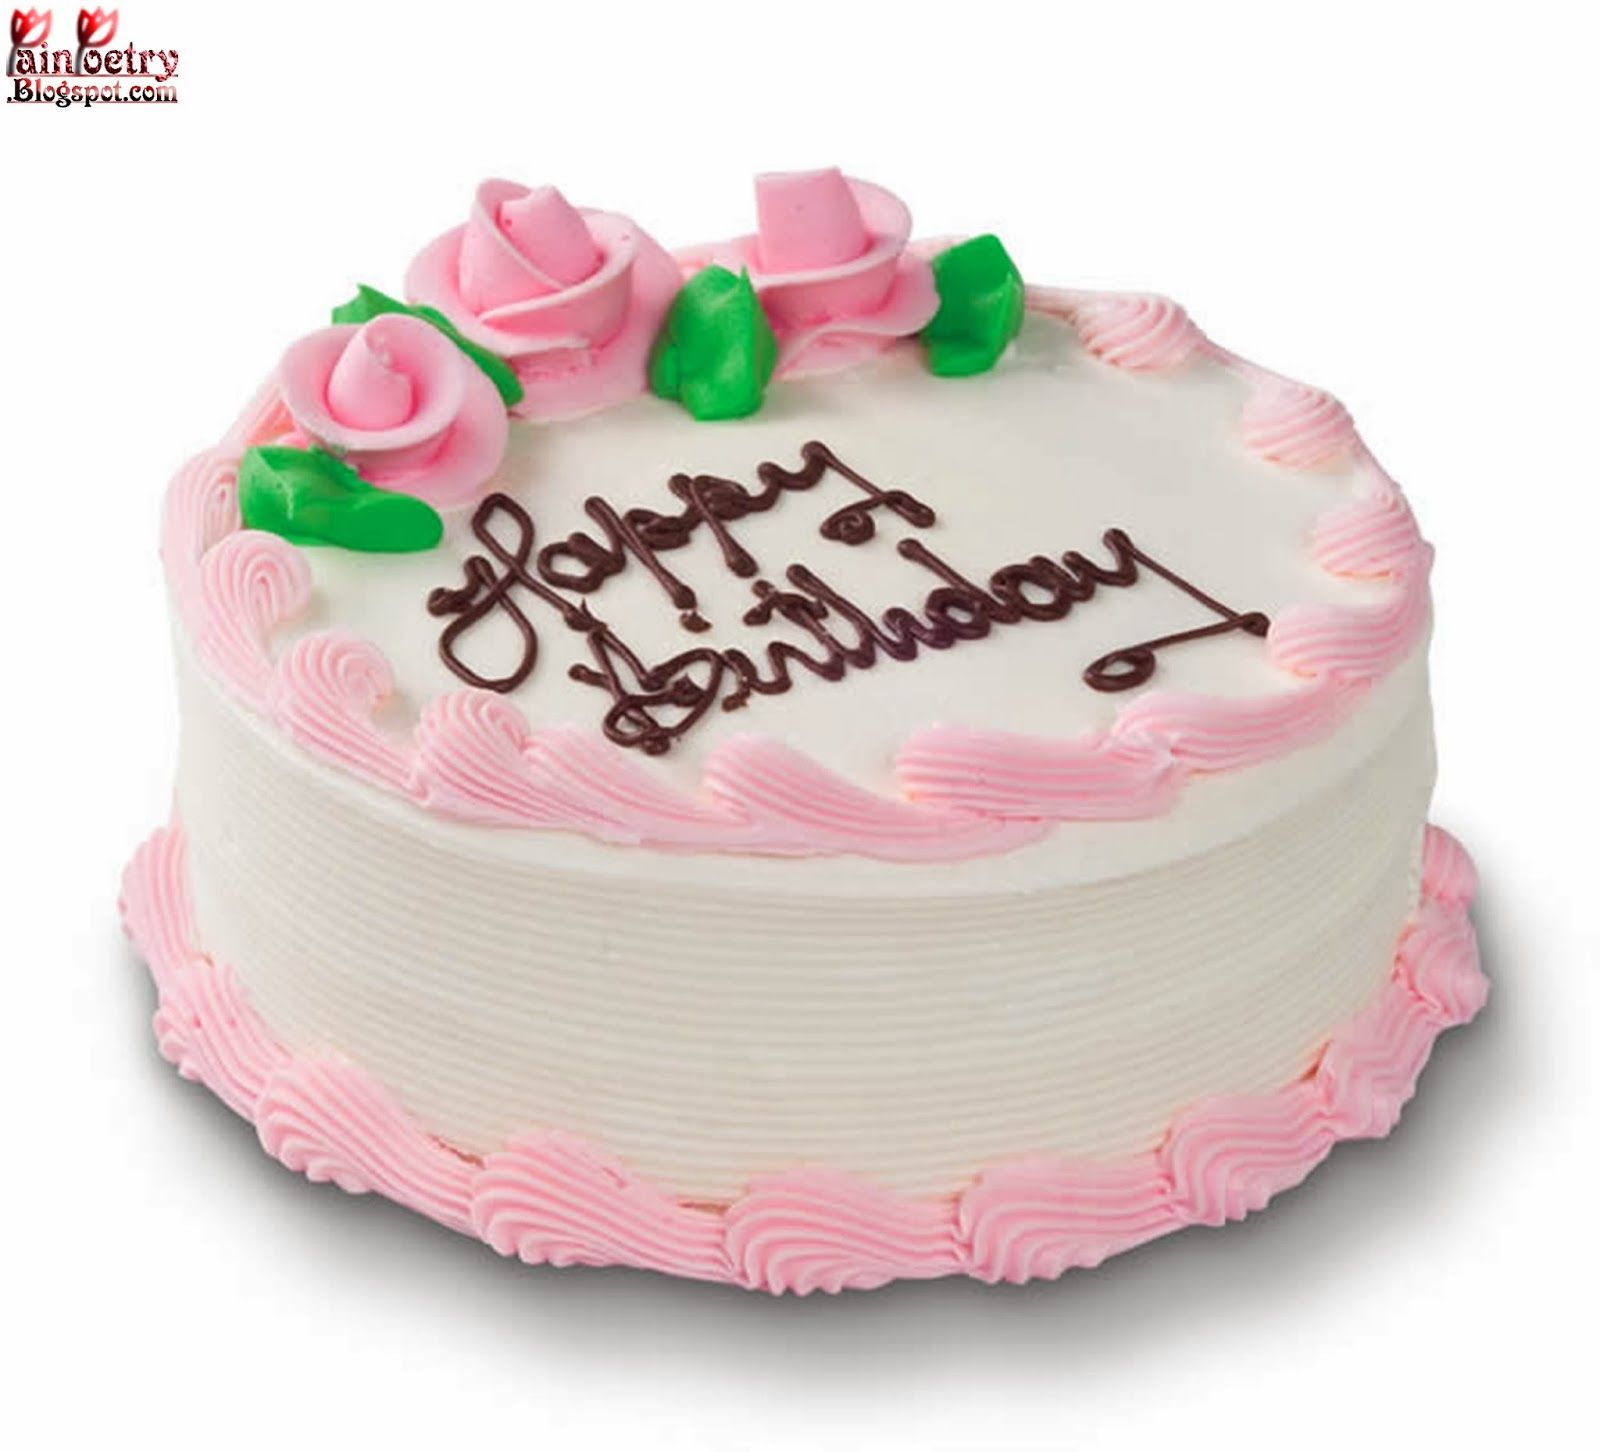 Happy Birthday Cold Cream Cake Image Hd Wide Recipes To Cook